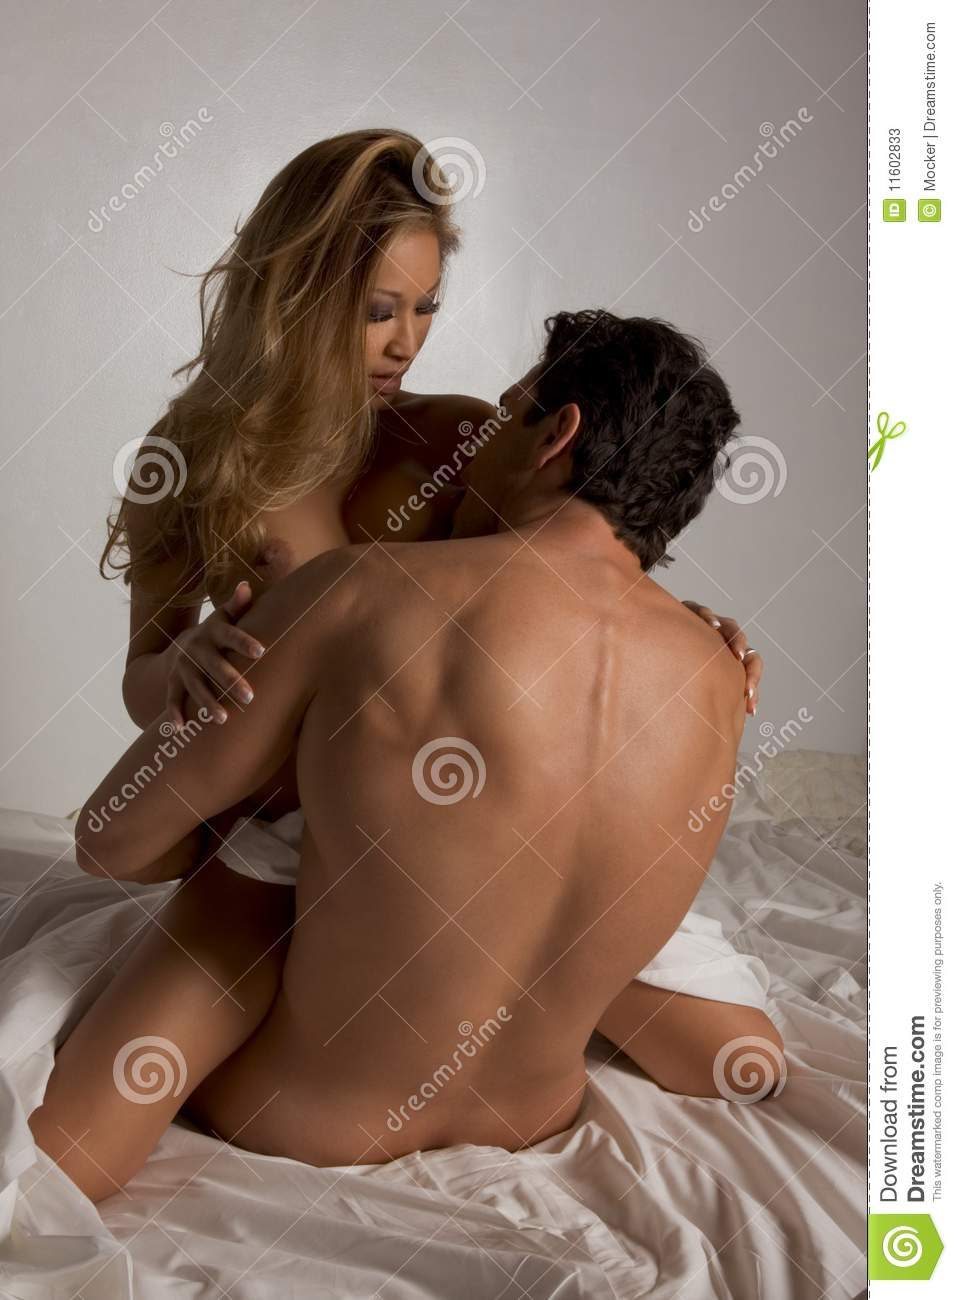 Naked sex with man and a woman